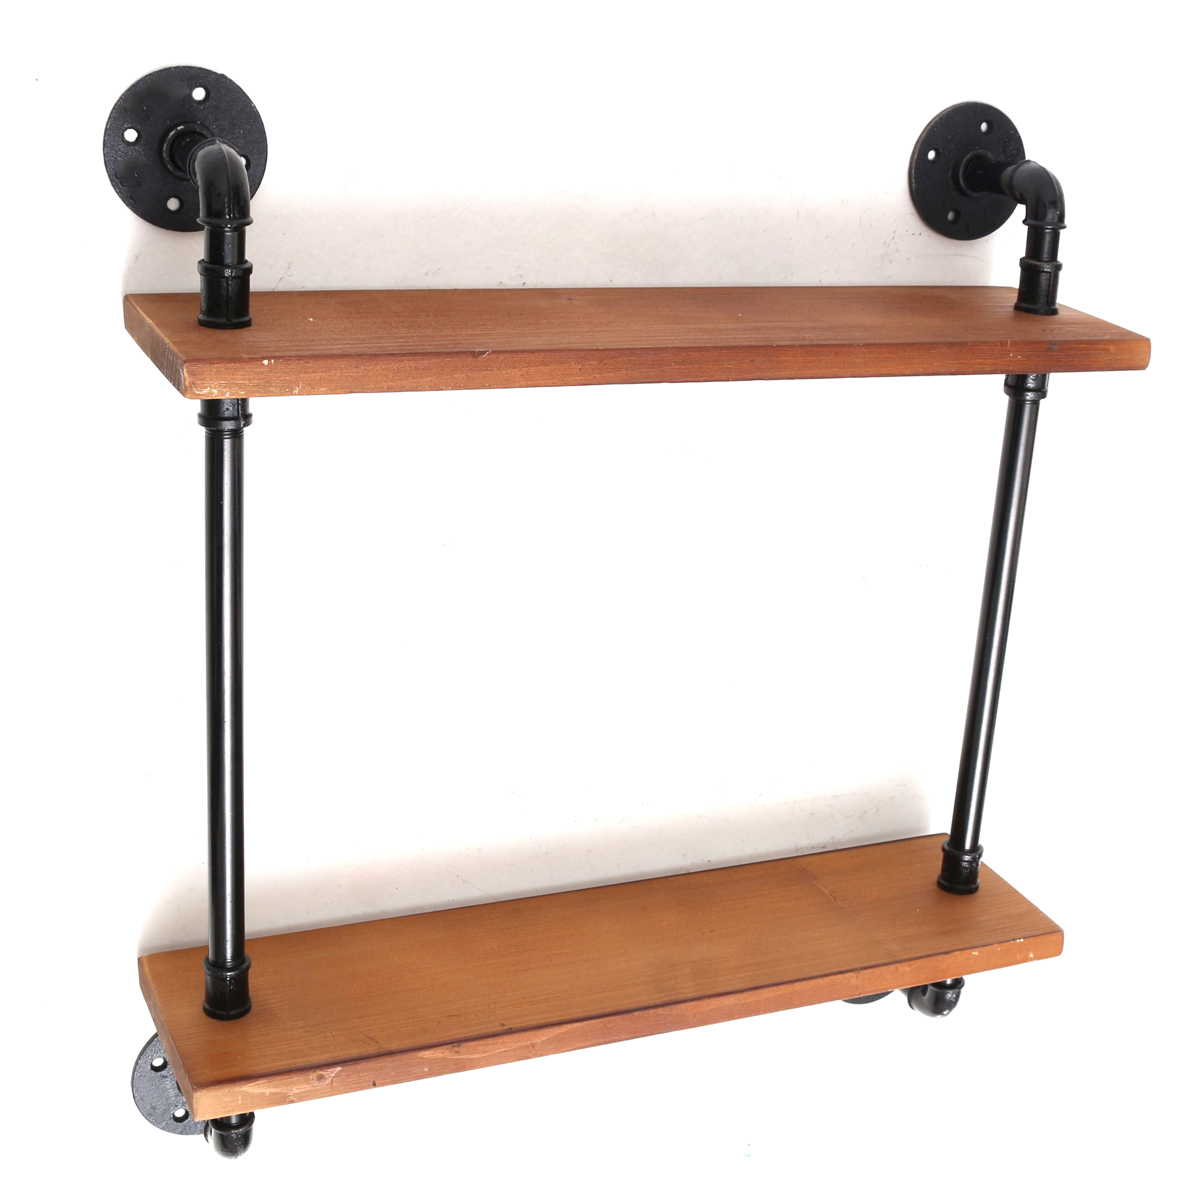 Industrial Iron Pipe Wooden Shelf Bracket Wall Mount Vintage Retro Display Storage Shelving